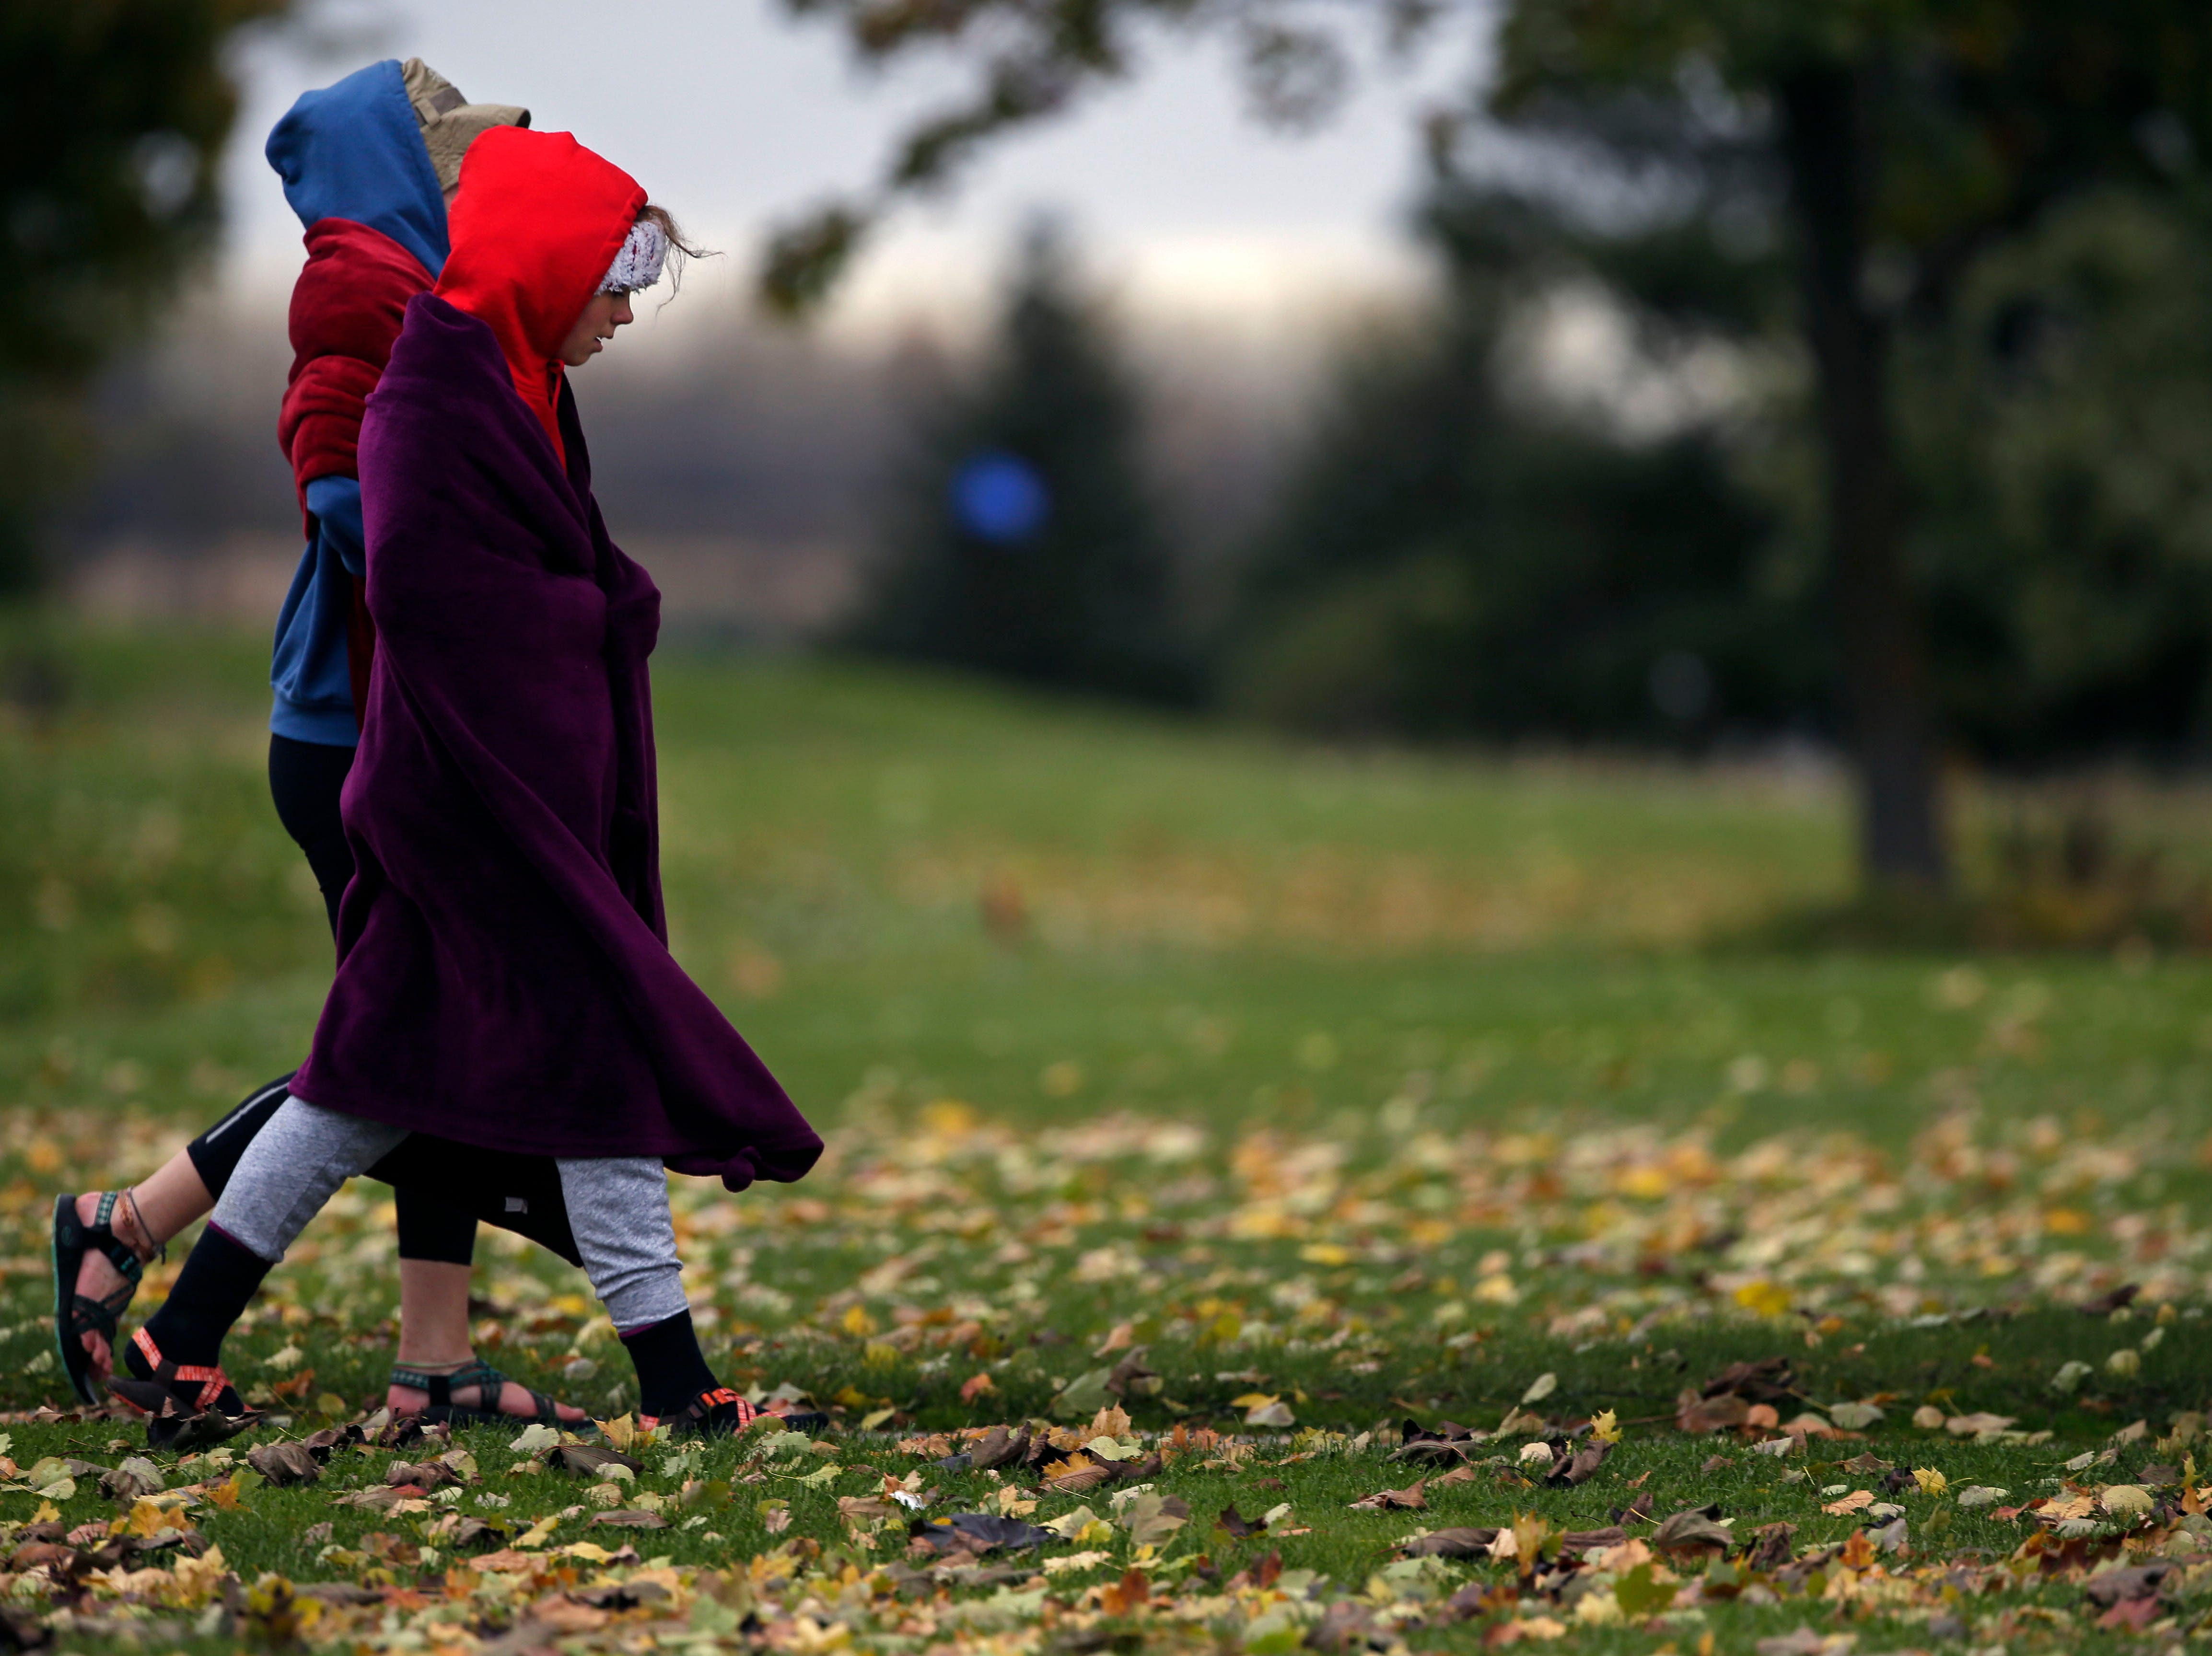 There was time to walk the course before the WIAA Division 2 Freedom cross country sectional Saturday, October 20, 2018, at Irish Waters Golf Course in Freedom, Wis.